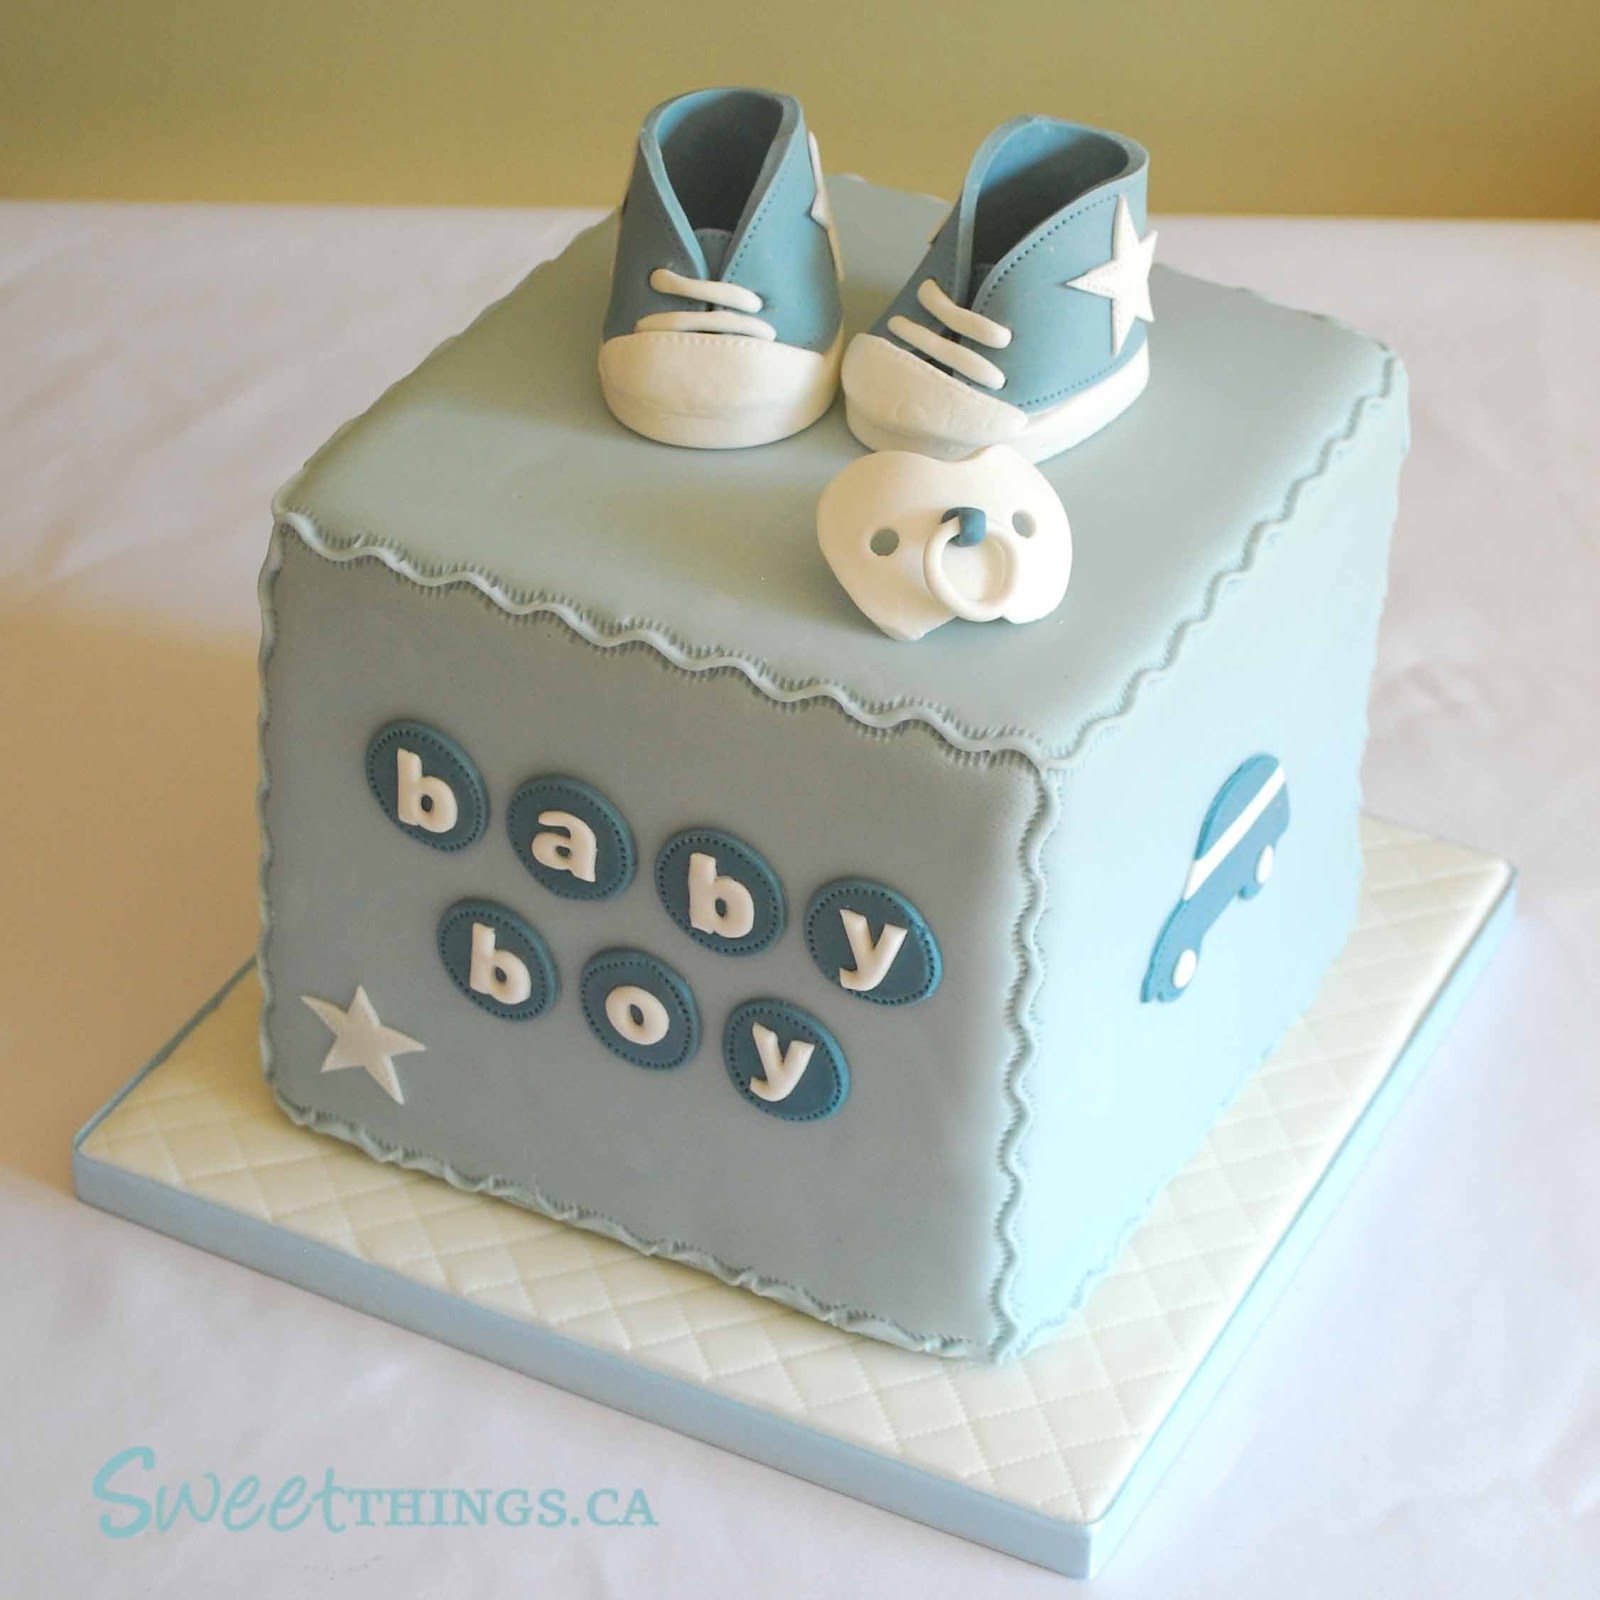 Images Of Newborn Baby Boy Cake : SweetThings: Baby Boy Cake